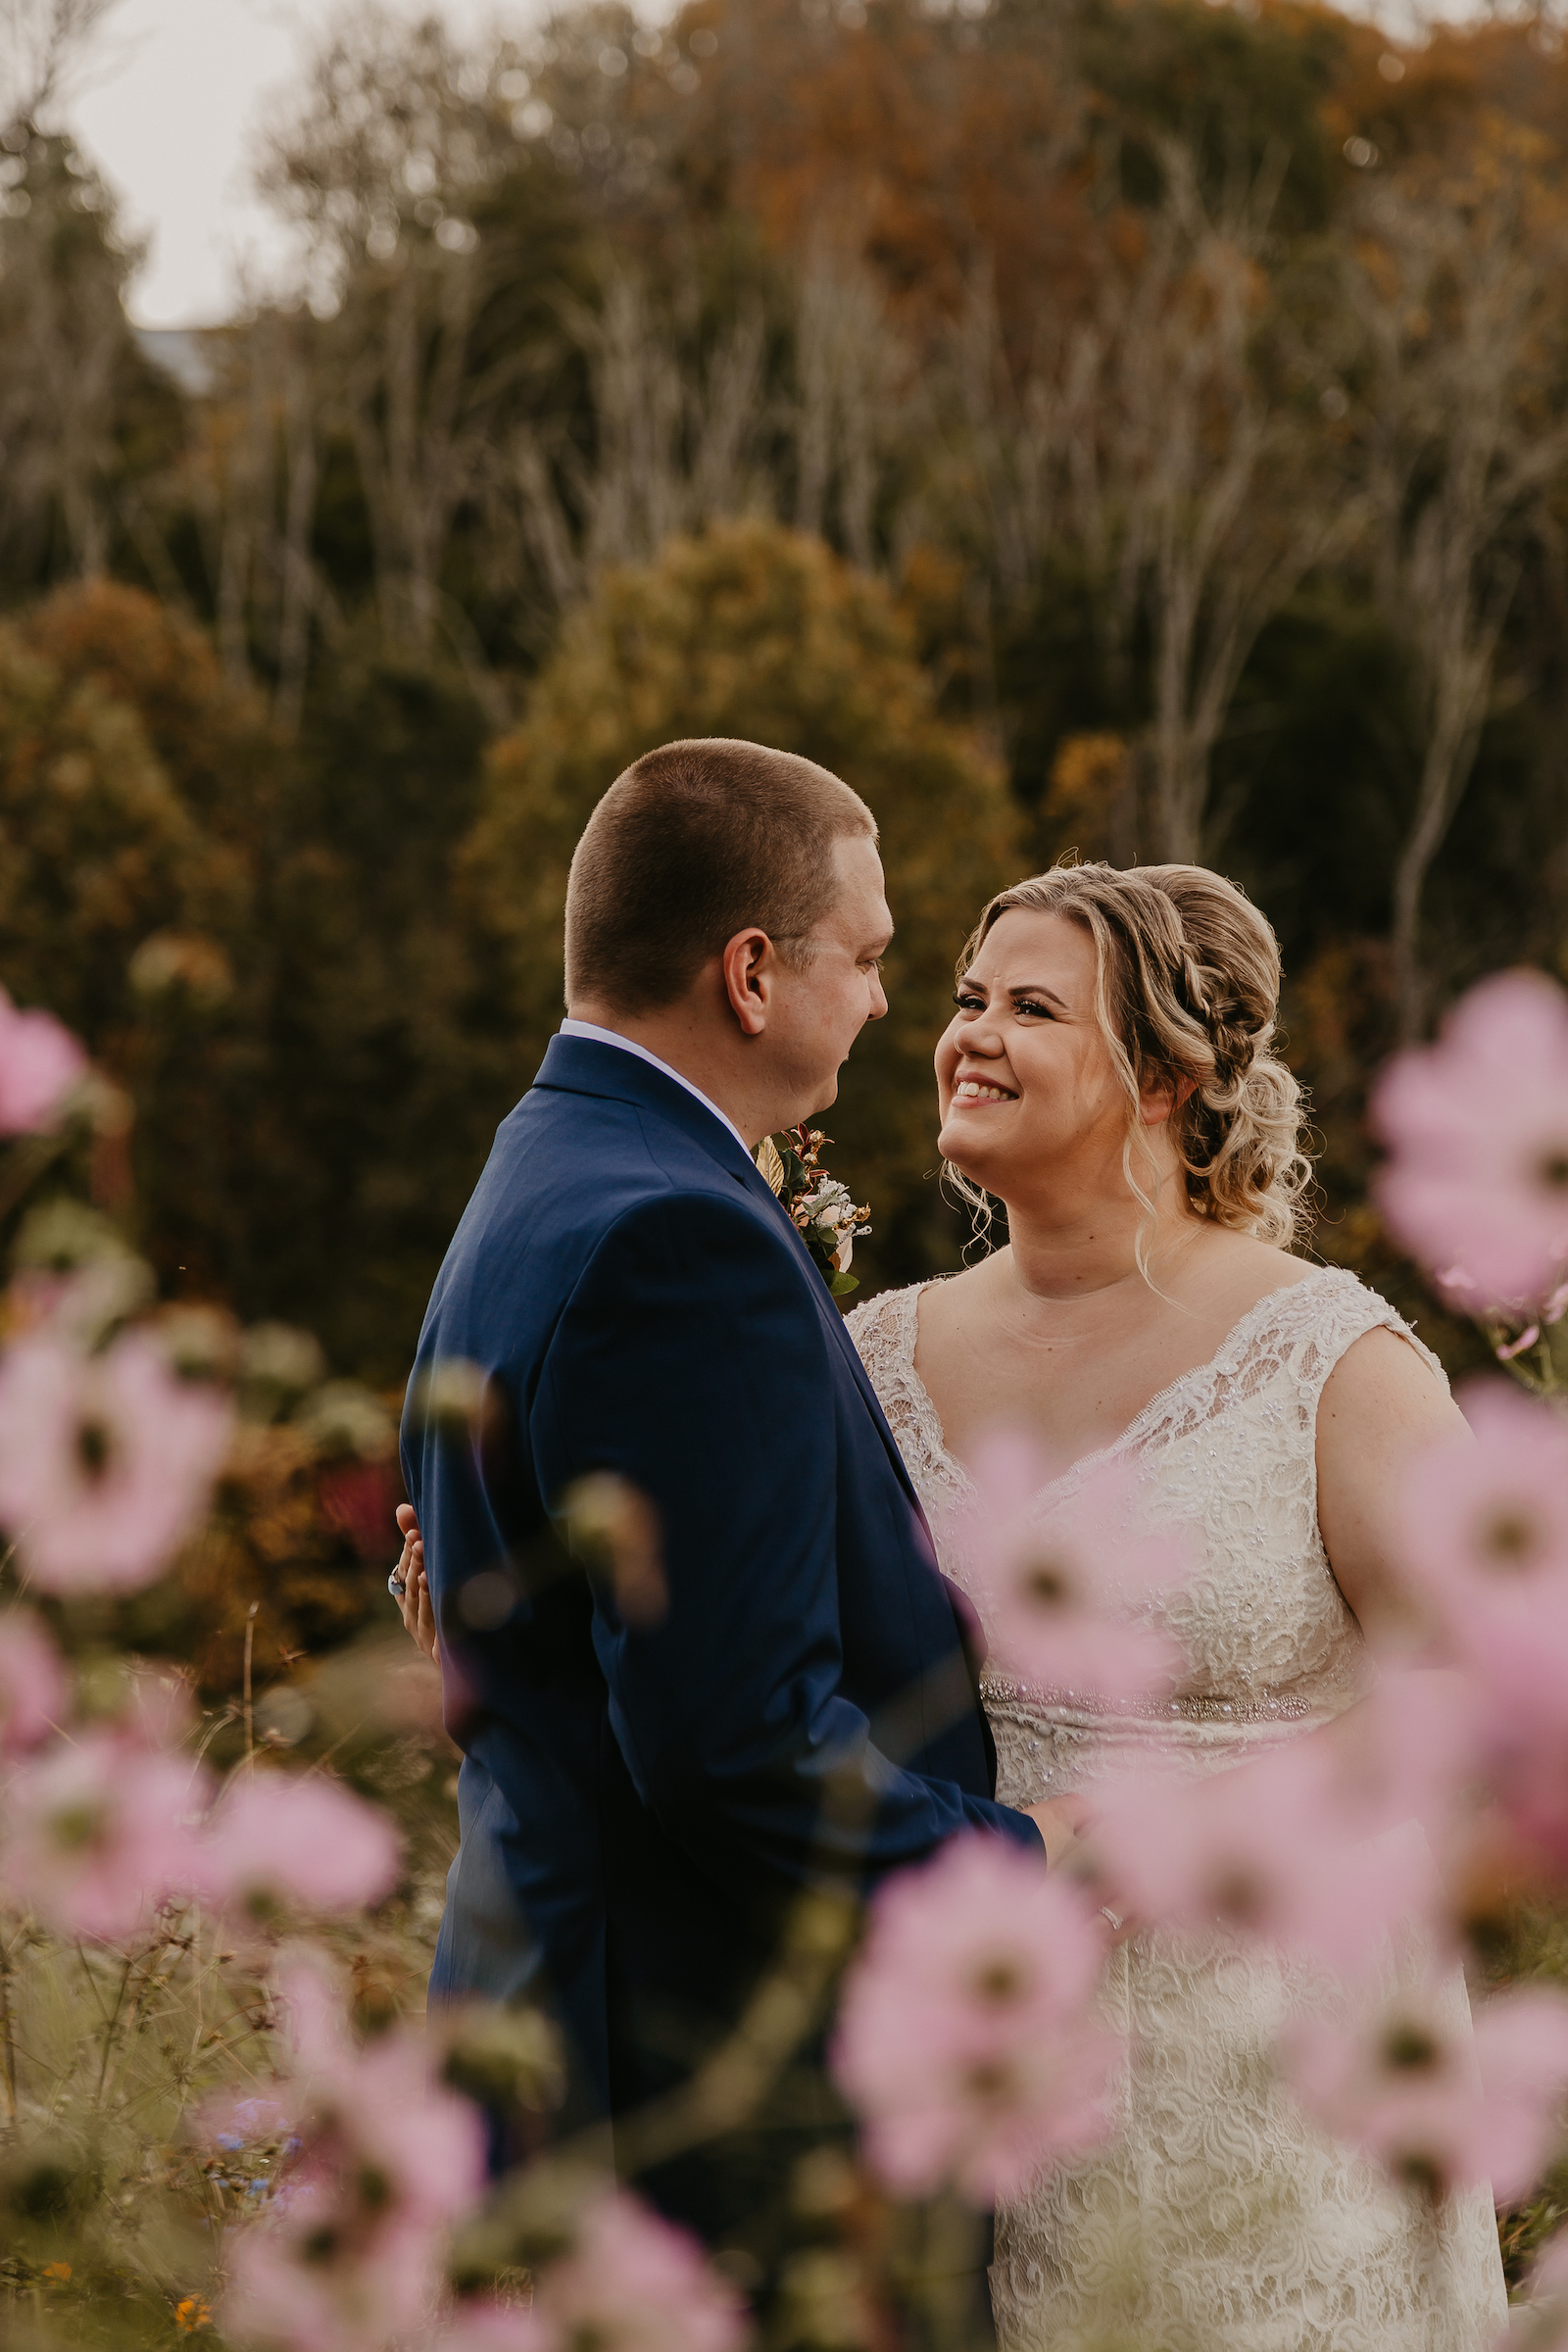 A couple in a field surrounded by flowers at flower mountain wedding venues in gatlinburg tennessee